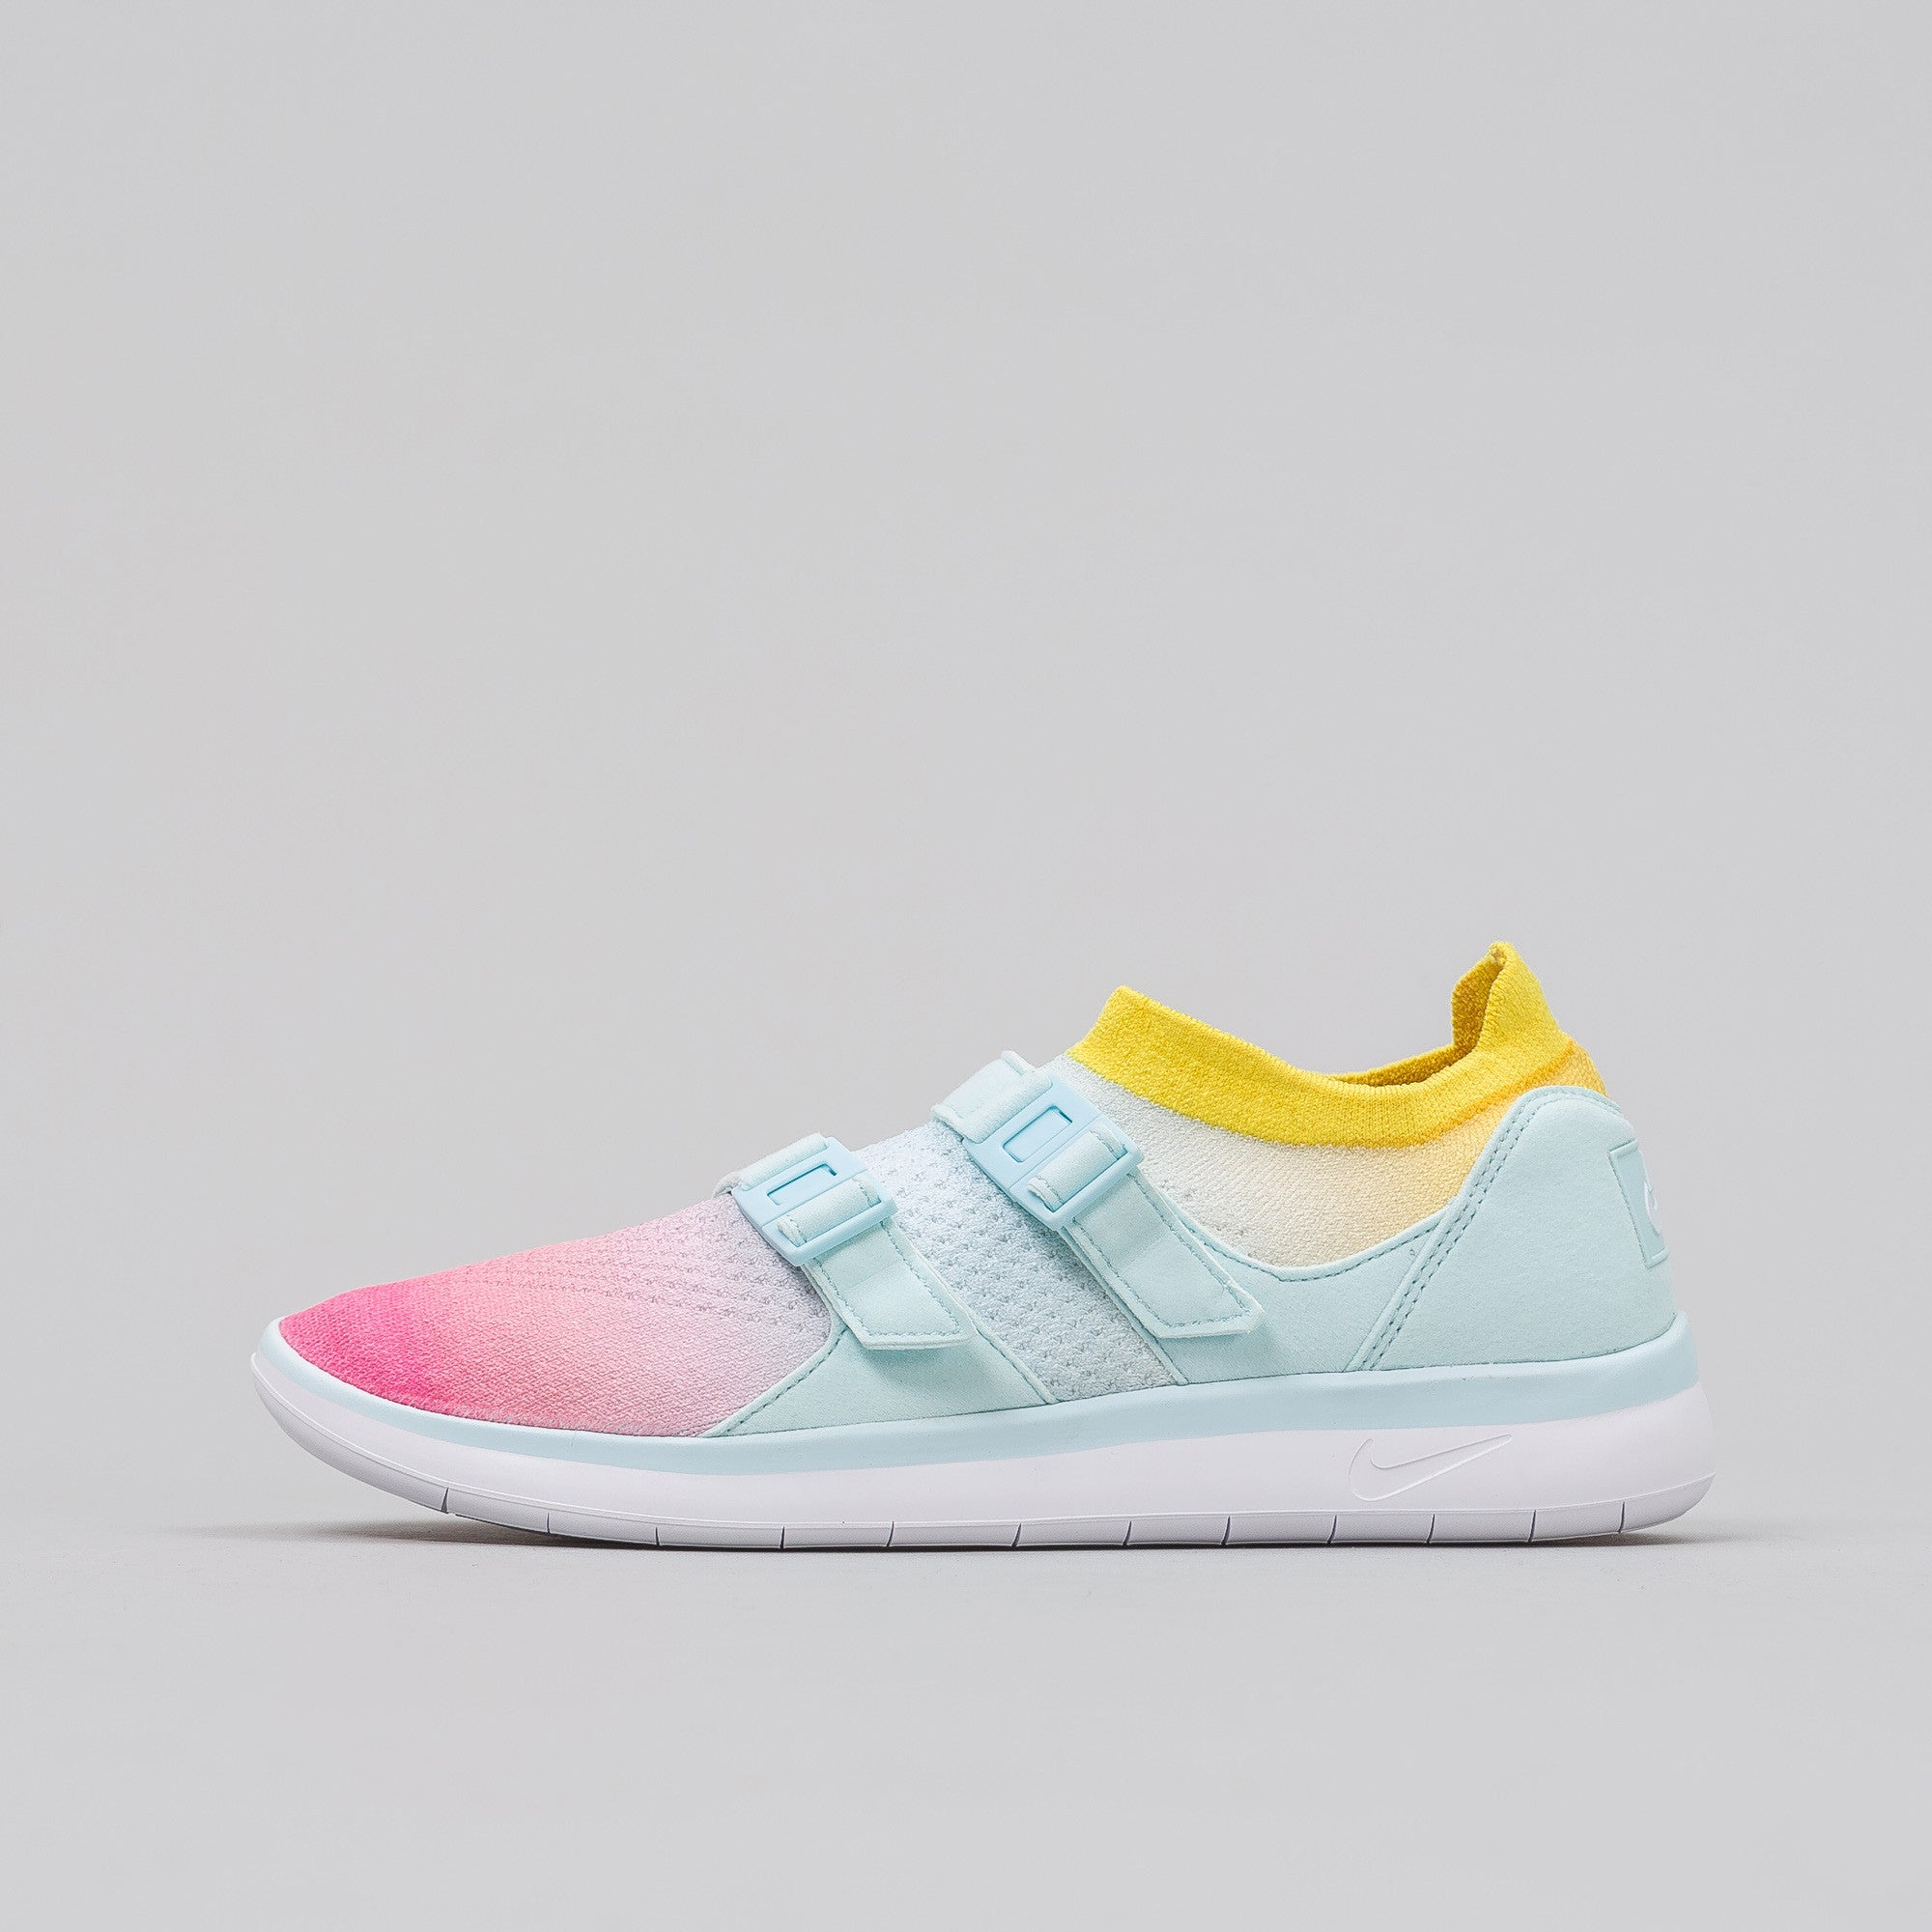 Women's Air Sockracer Flyknit in White/Glacier Blue/Pink